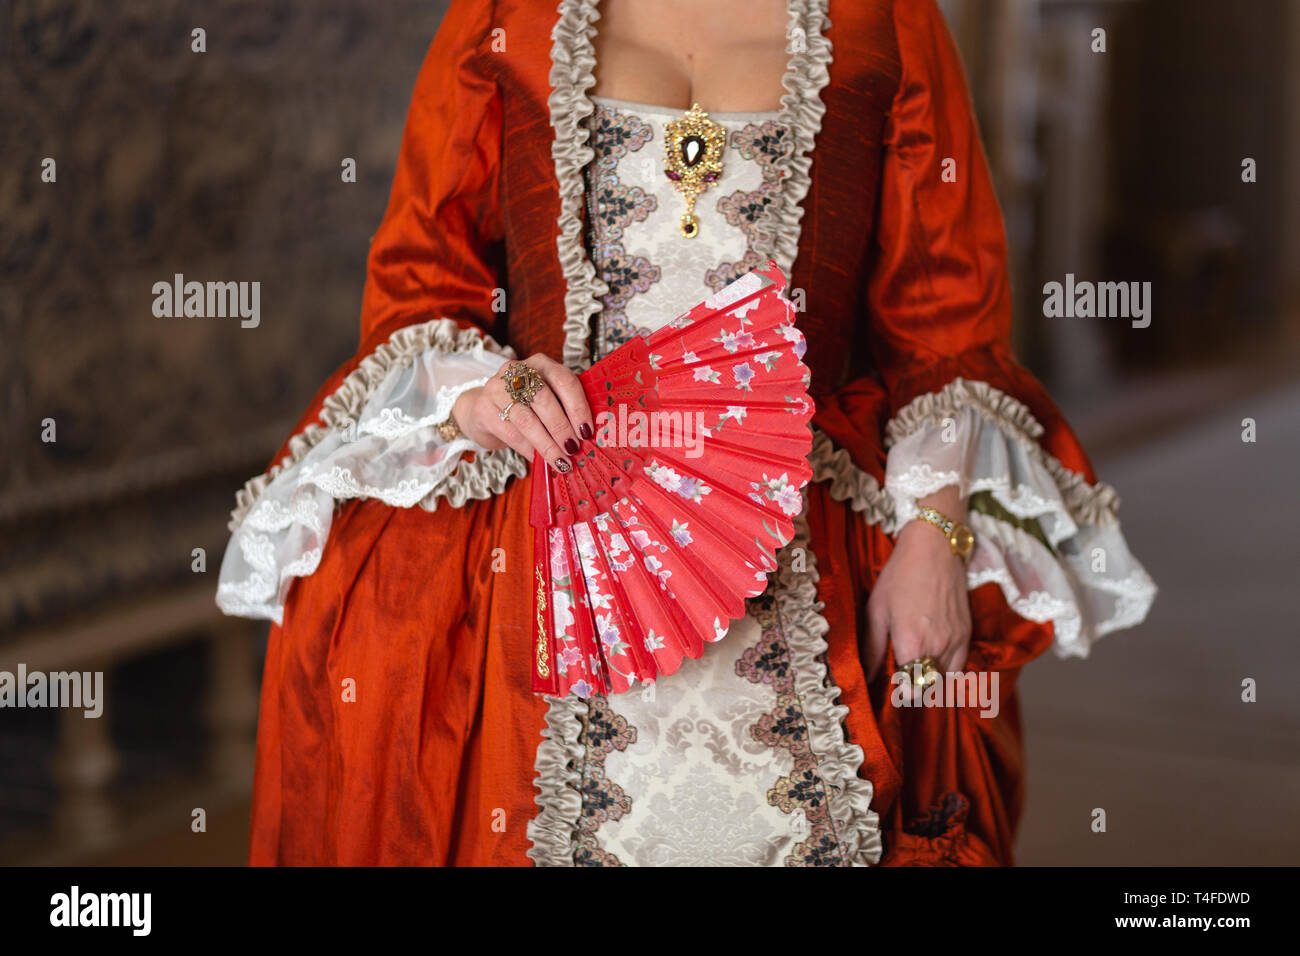 Retro style royal medieval ball - Majestic palace with gorgeous people dressed in king and queen's friends dresses with accessories such as fan and Stock Photo